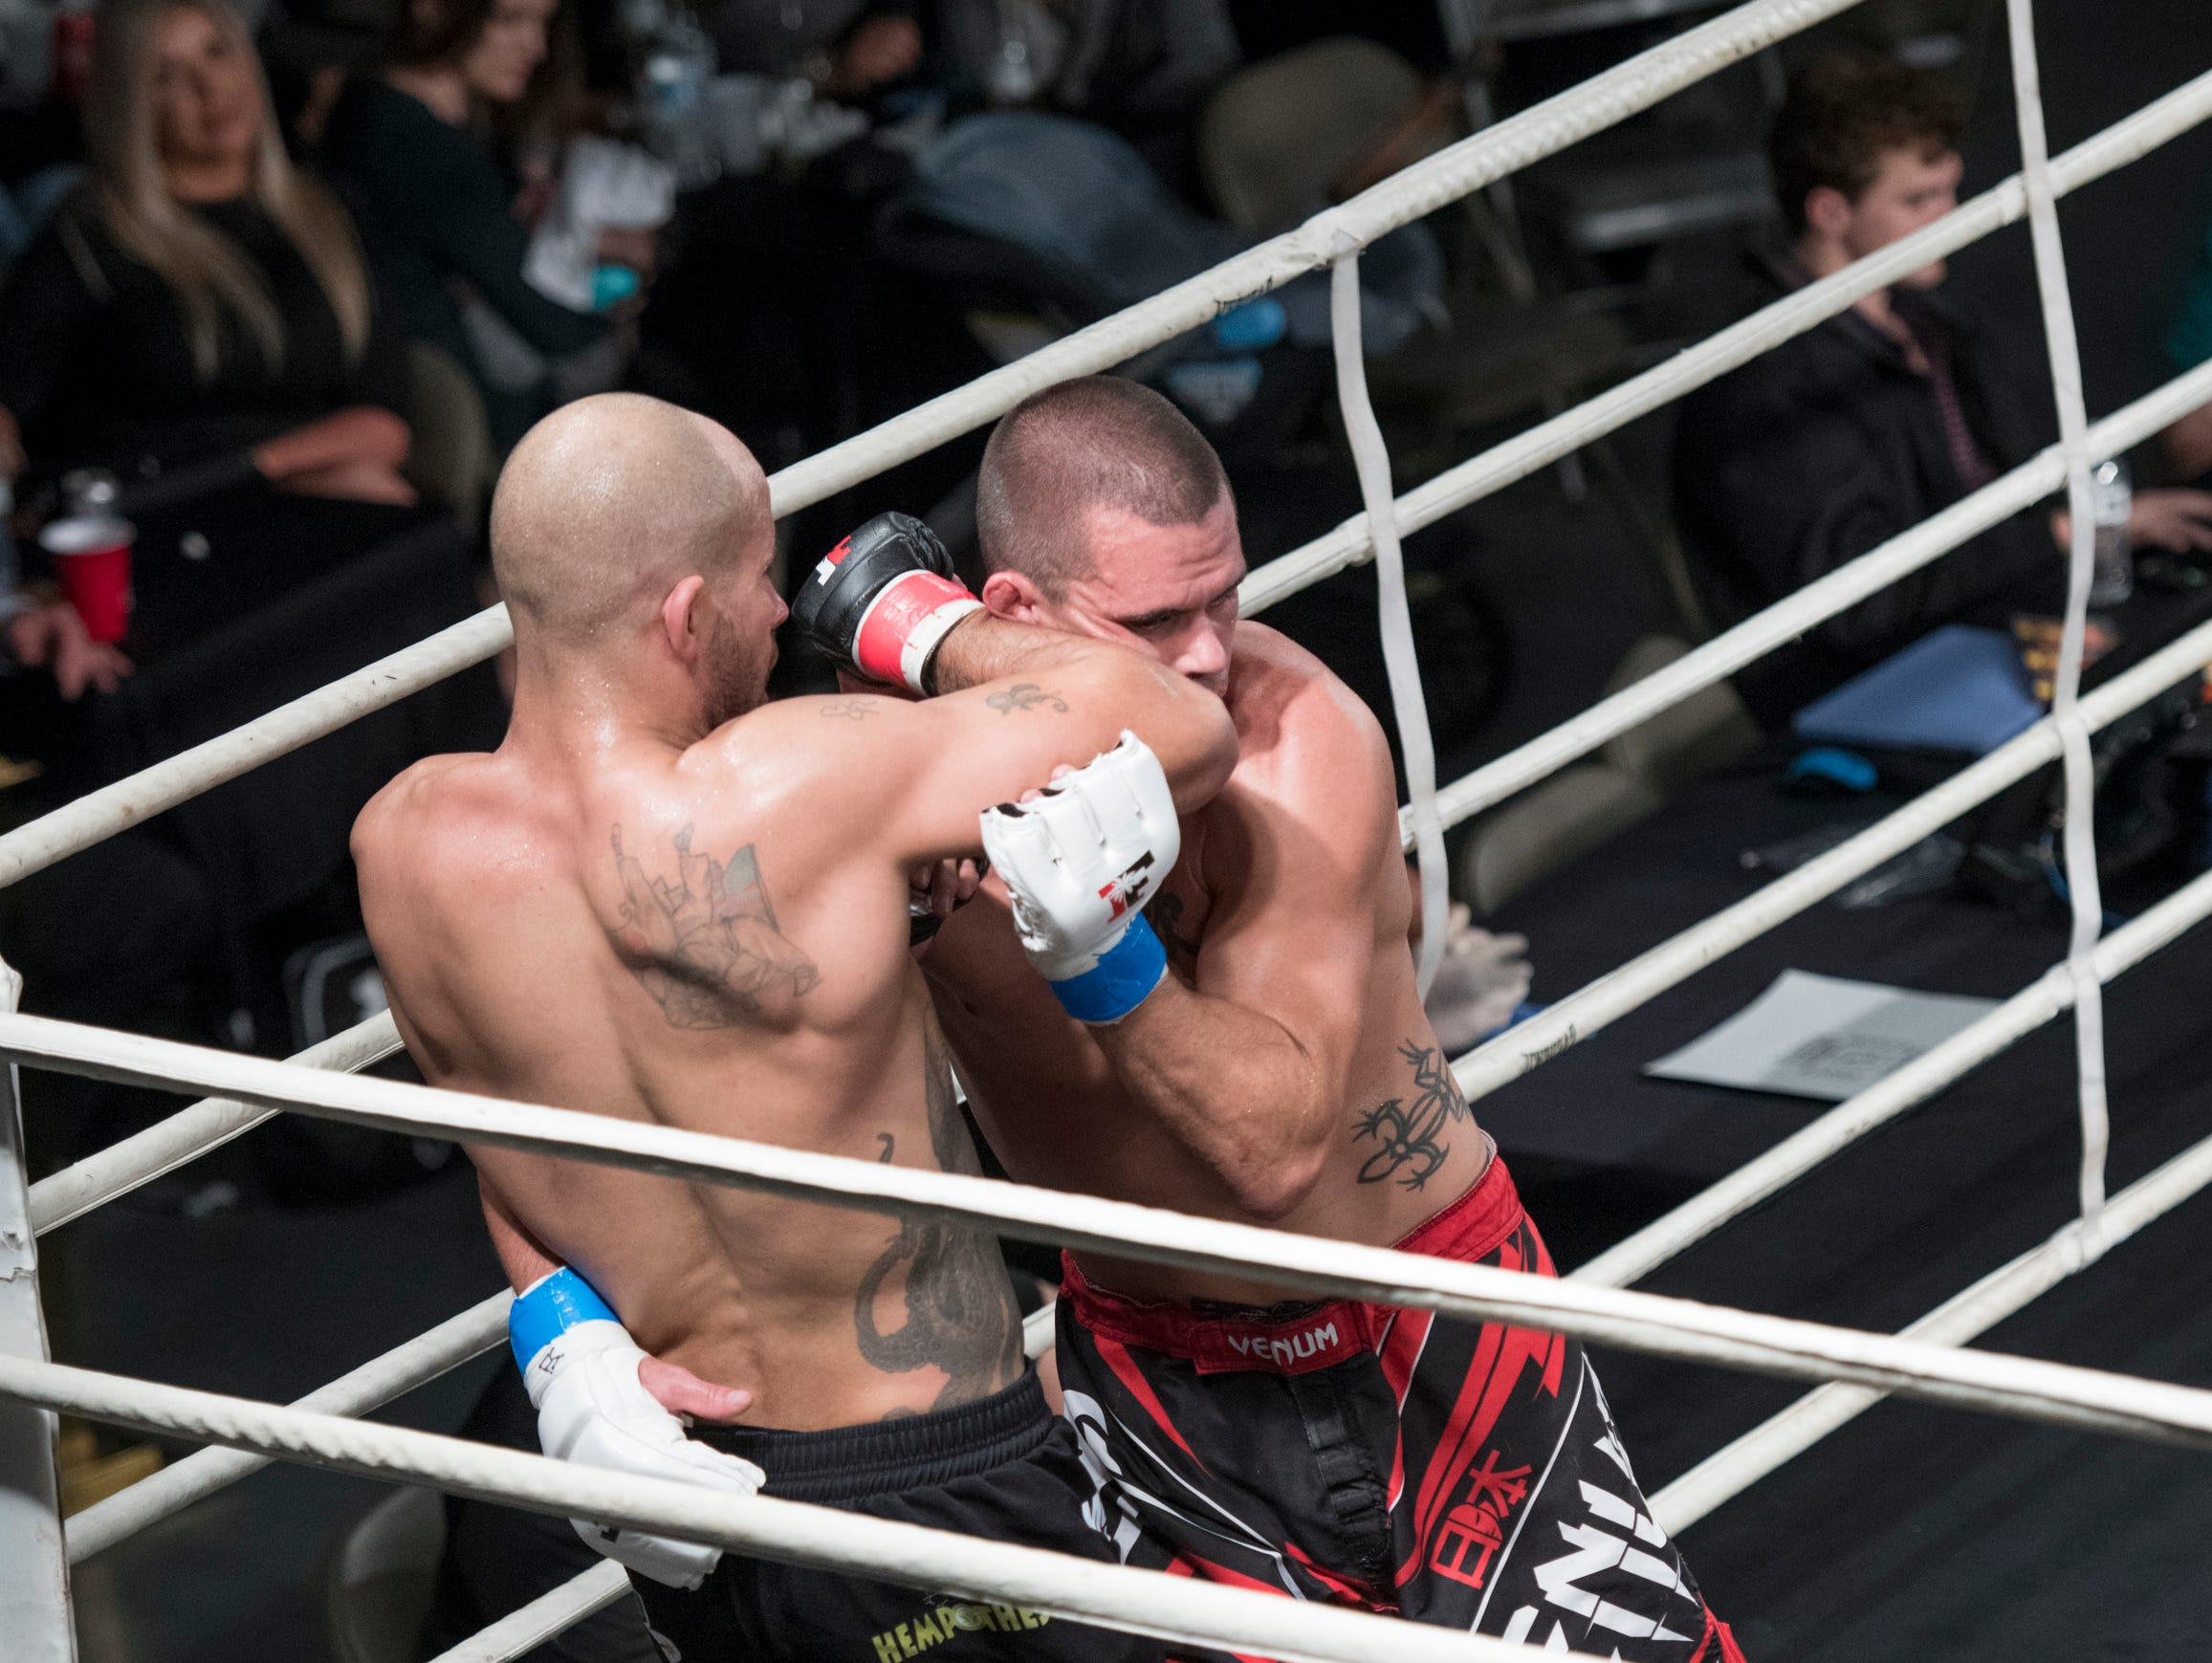 Robert Turnquest (red taped gloves) and Wesley Golden (blue taped gloves) fight during the Island Fights 52 at the Jadji Shrine in Pensacola on Thursday, February 7, 2019.